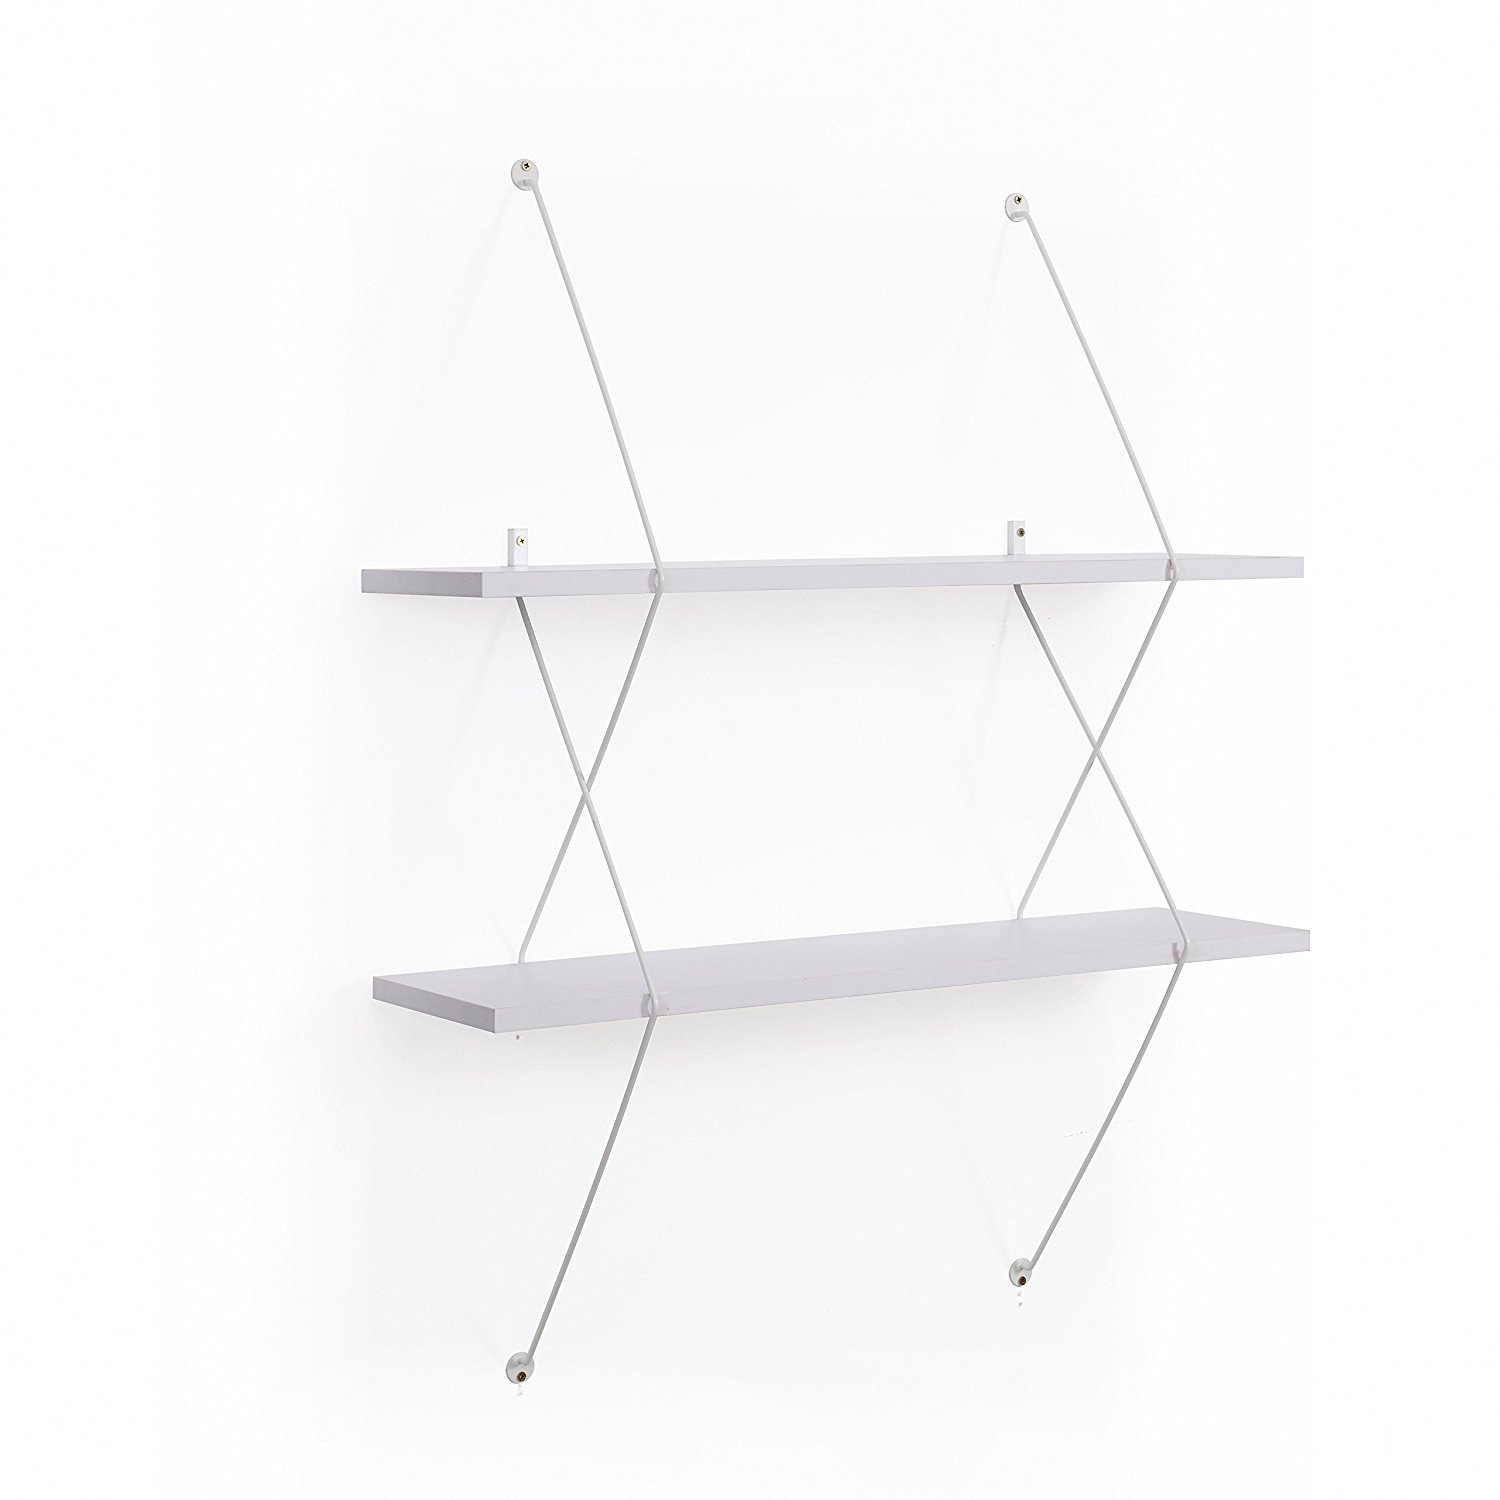 Danya B 2-Tier Floating Wall Mount Shelf with White Wire Brackets – Display Books, Décor, Picture Frames or Collectables – Decorative Modern Home Décor